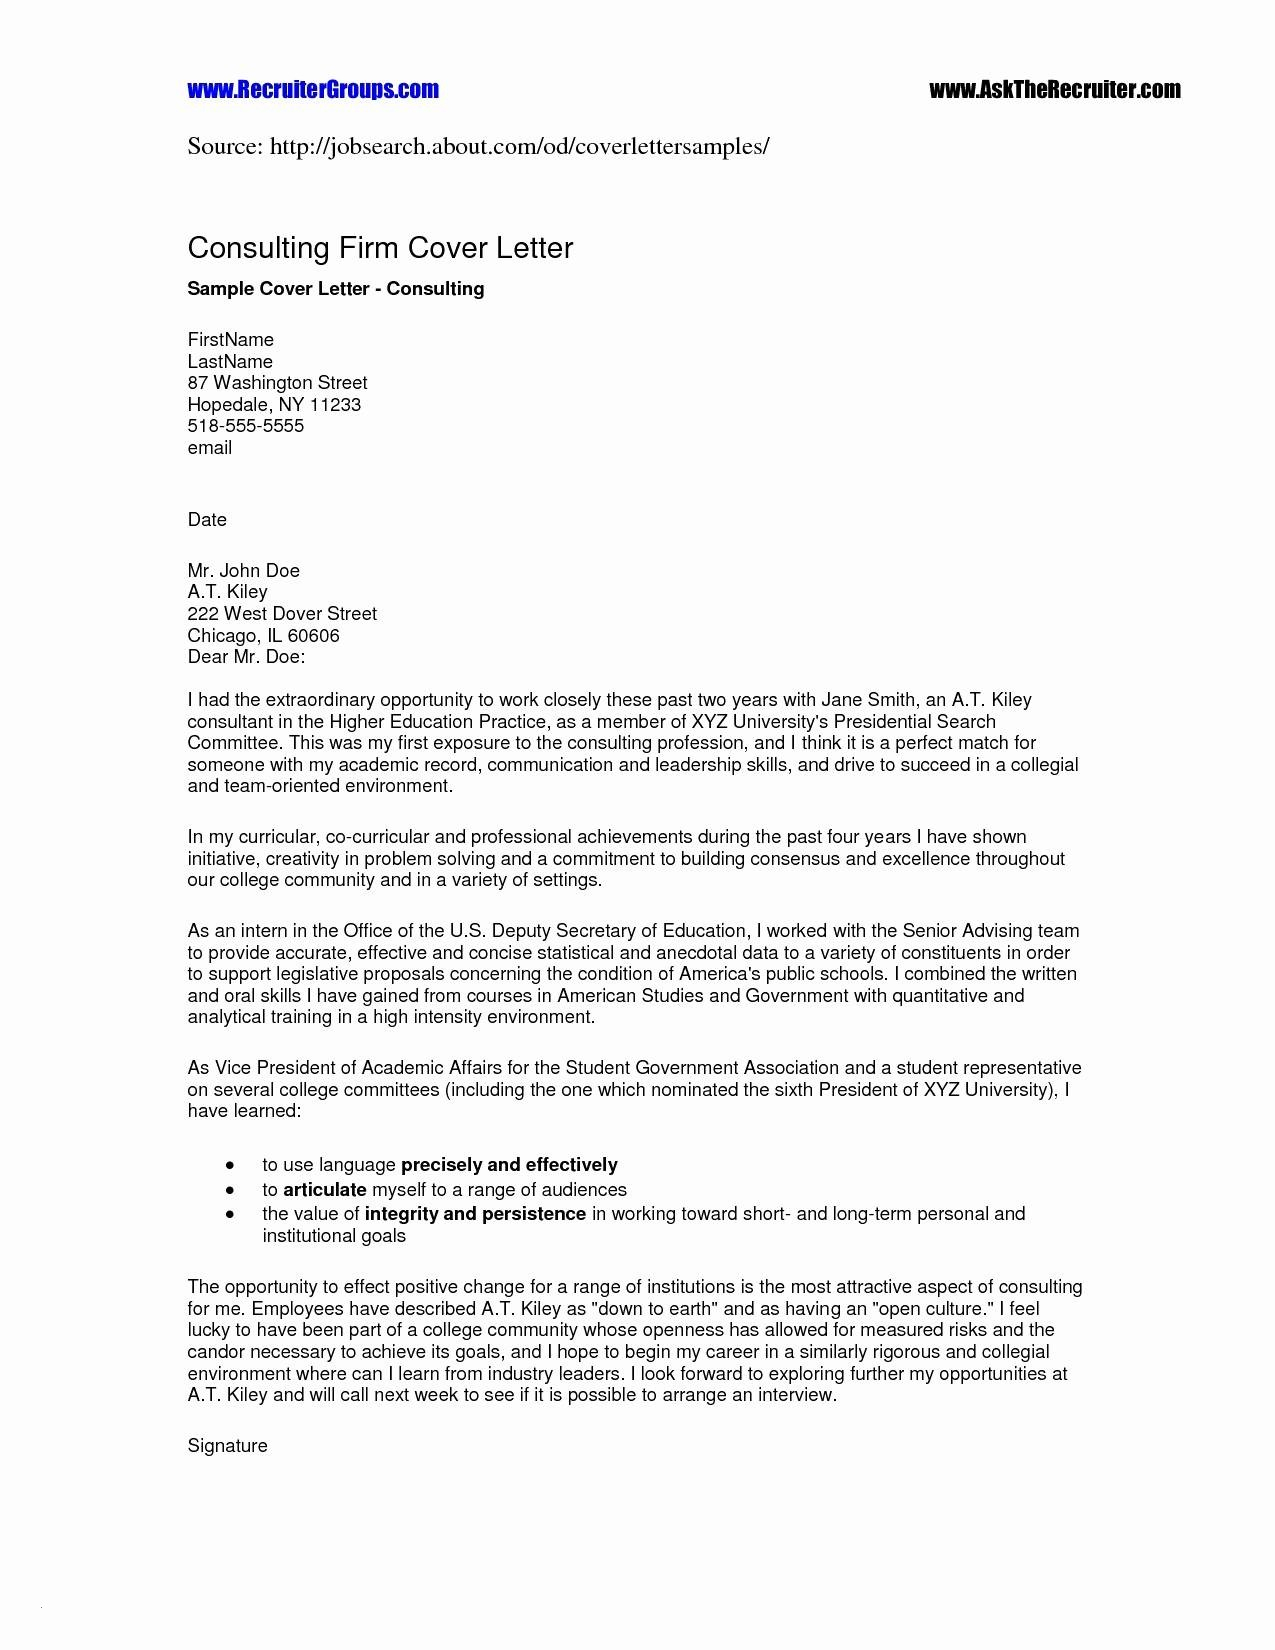 Government Job Cover Letter Template - Resume format for Government Job Best Sample Resume In Applying A